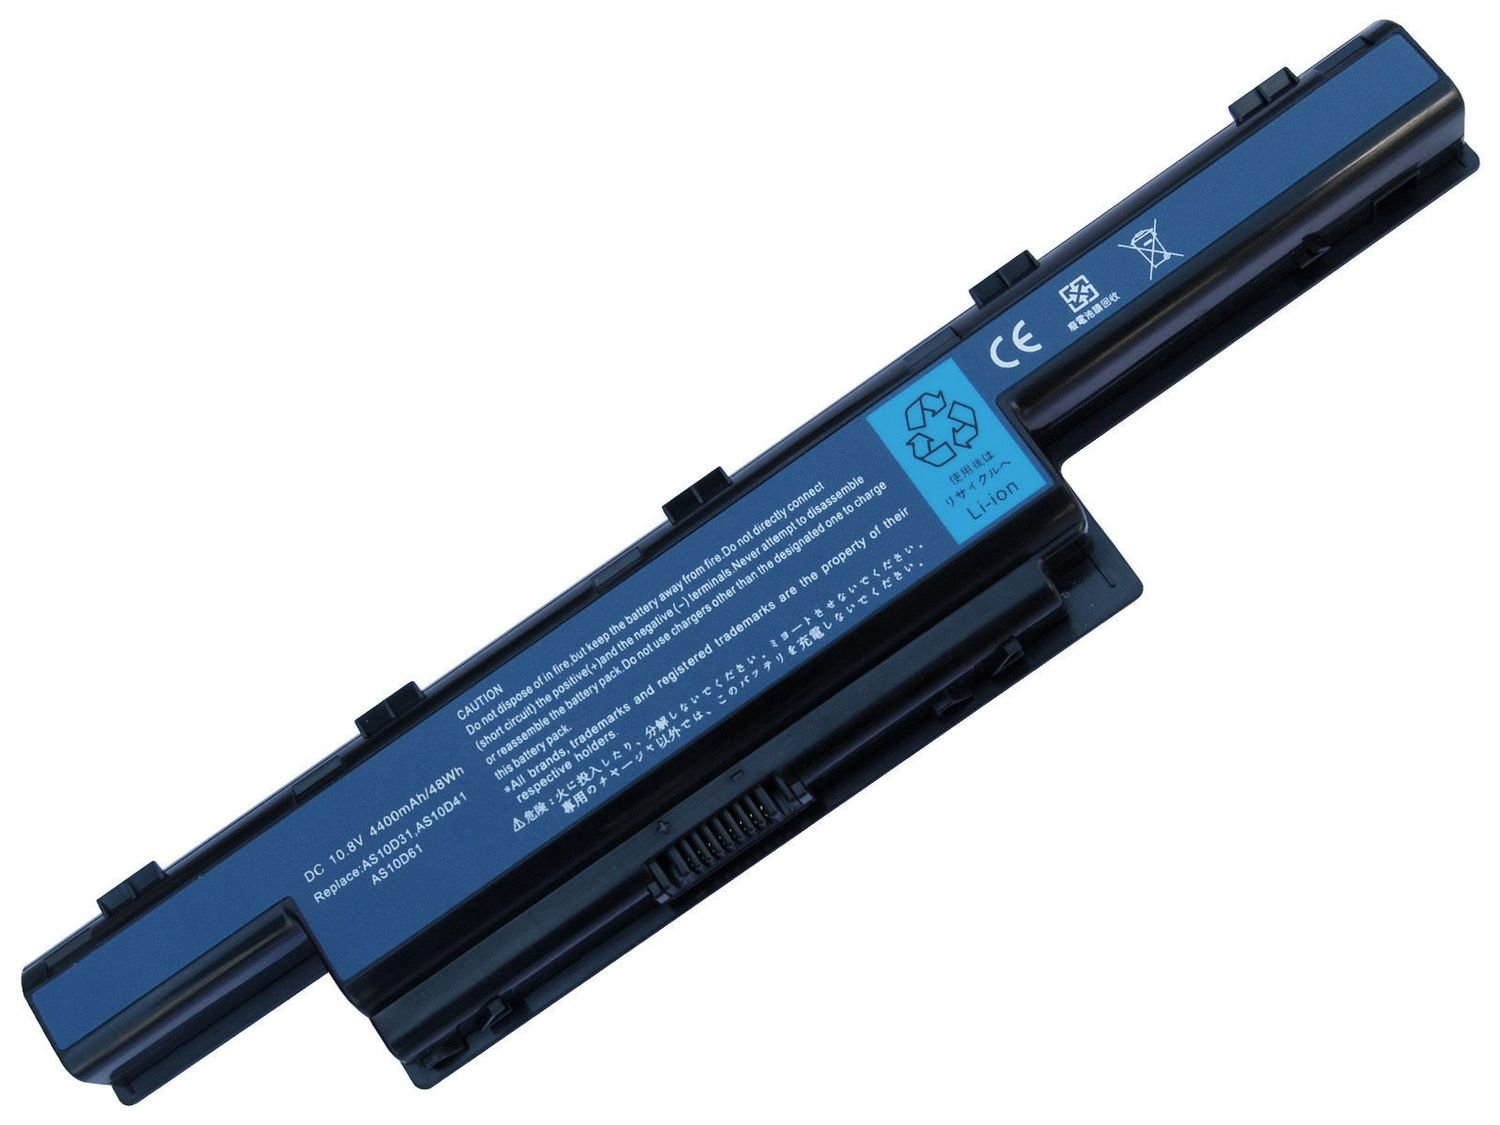 Acer aspire 4251 4252 4253 4253G 4333 Series laptop battery